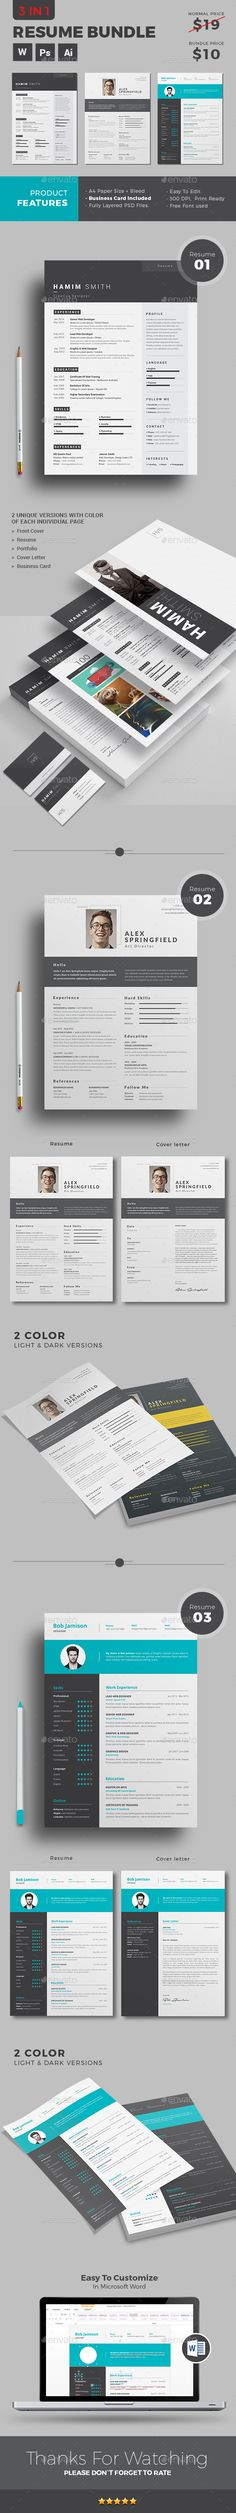 Resume Template Bundle | Download Now https://graphicriver.net/item/resume/18137599?ref=themedevisers